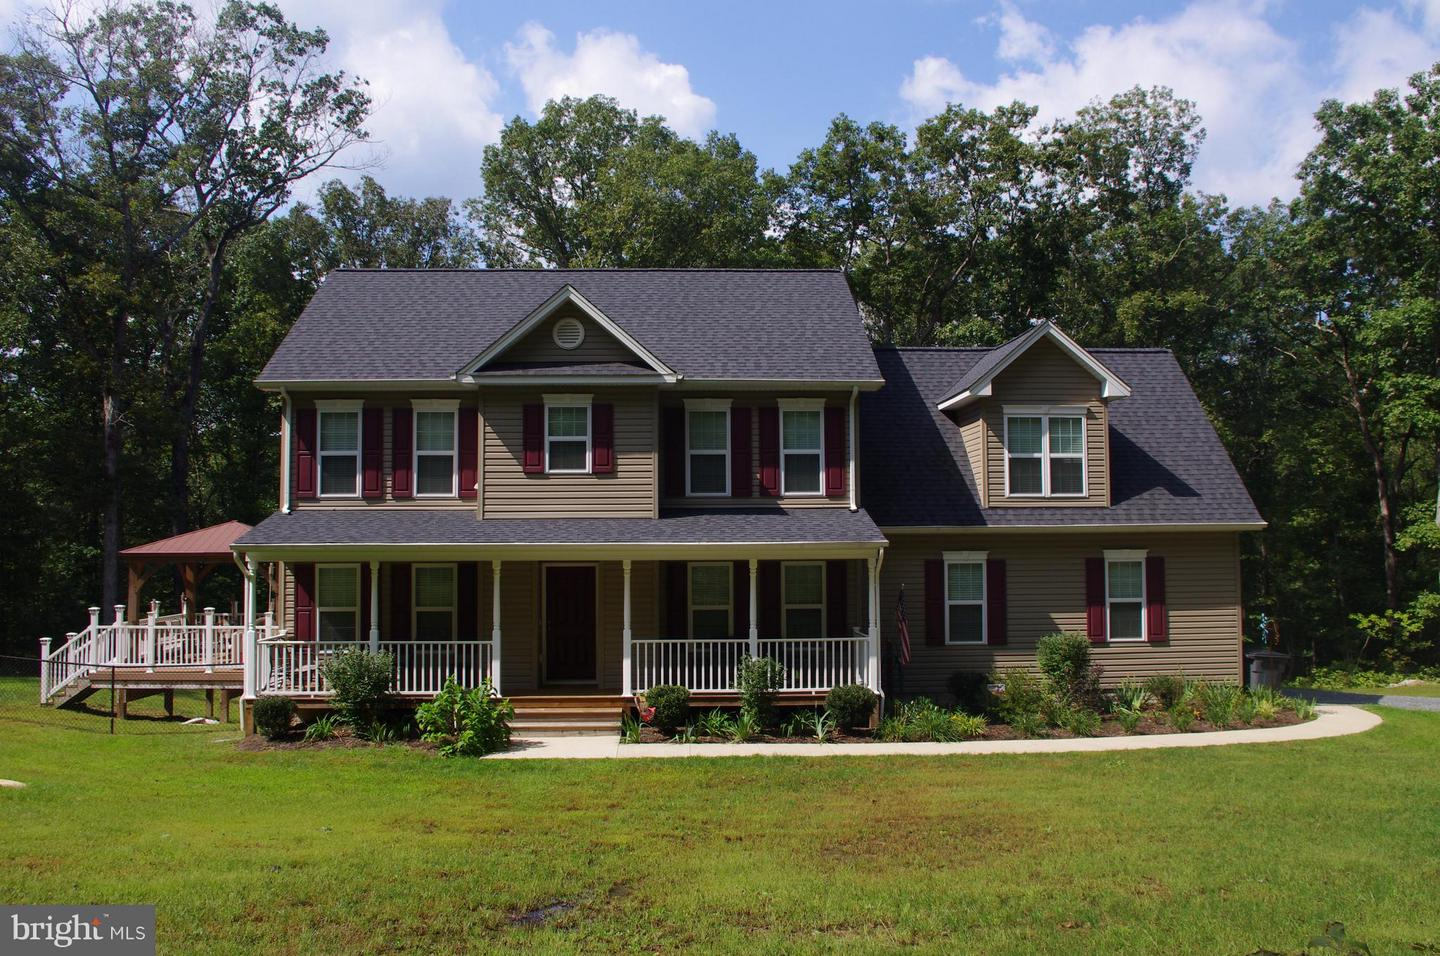 Single Family for Sale at 13116 Blackwells Mill Rd Goldvein, Virginia 22720 United States